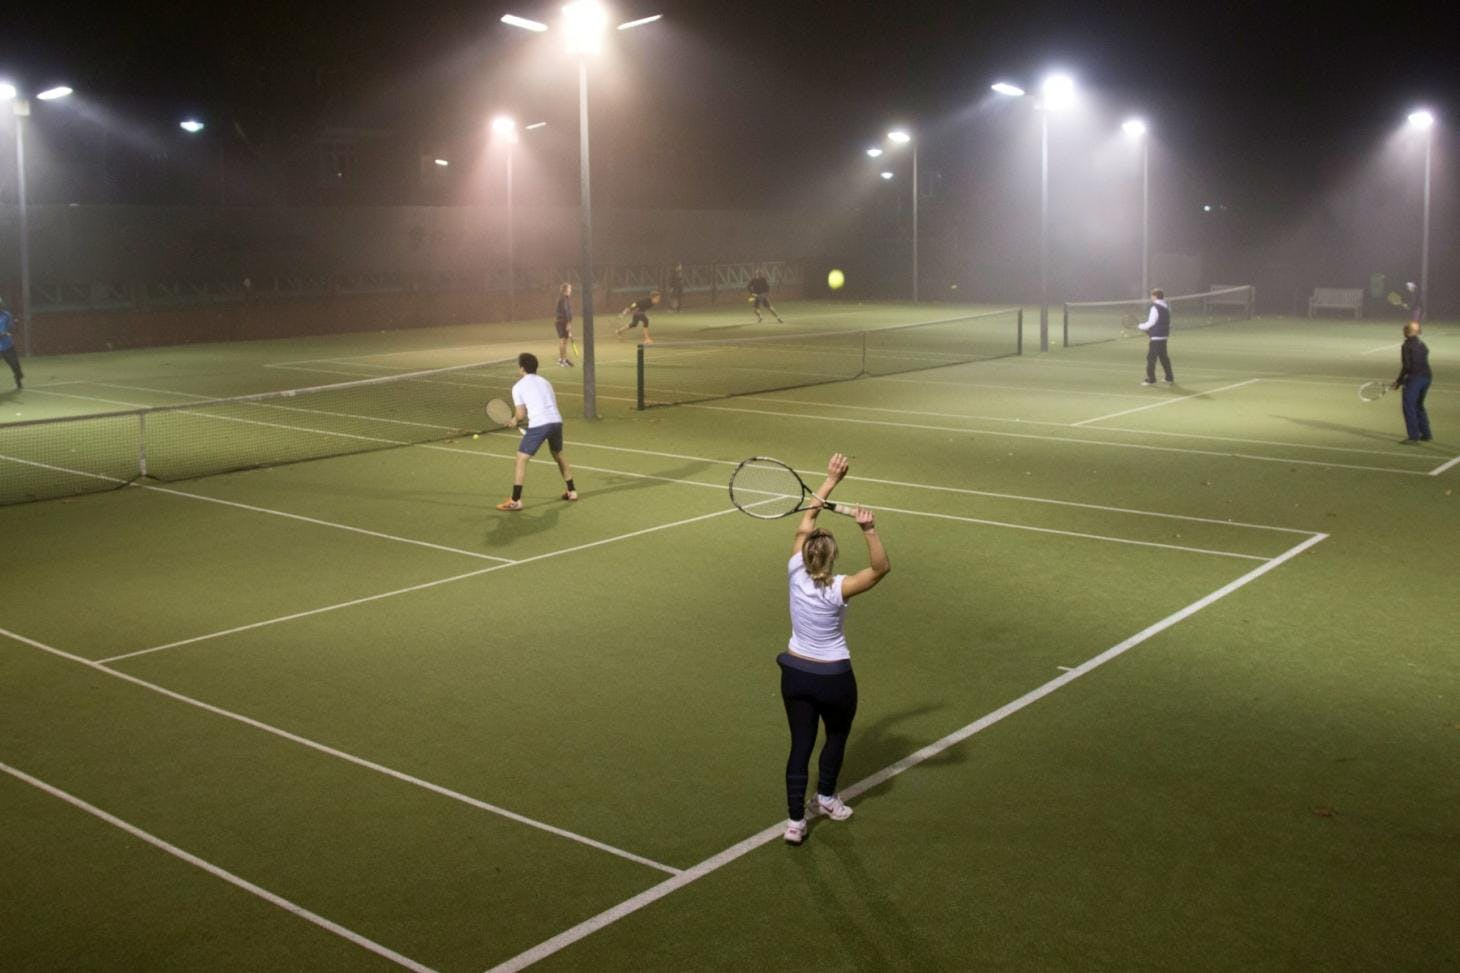 Globe Lawn Tennis Club Outdoor | Astroturf tennis court